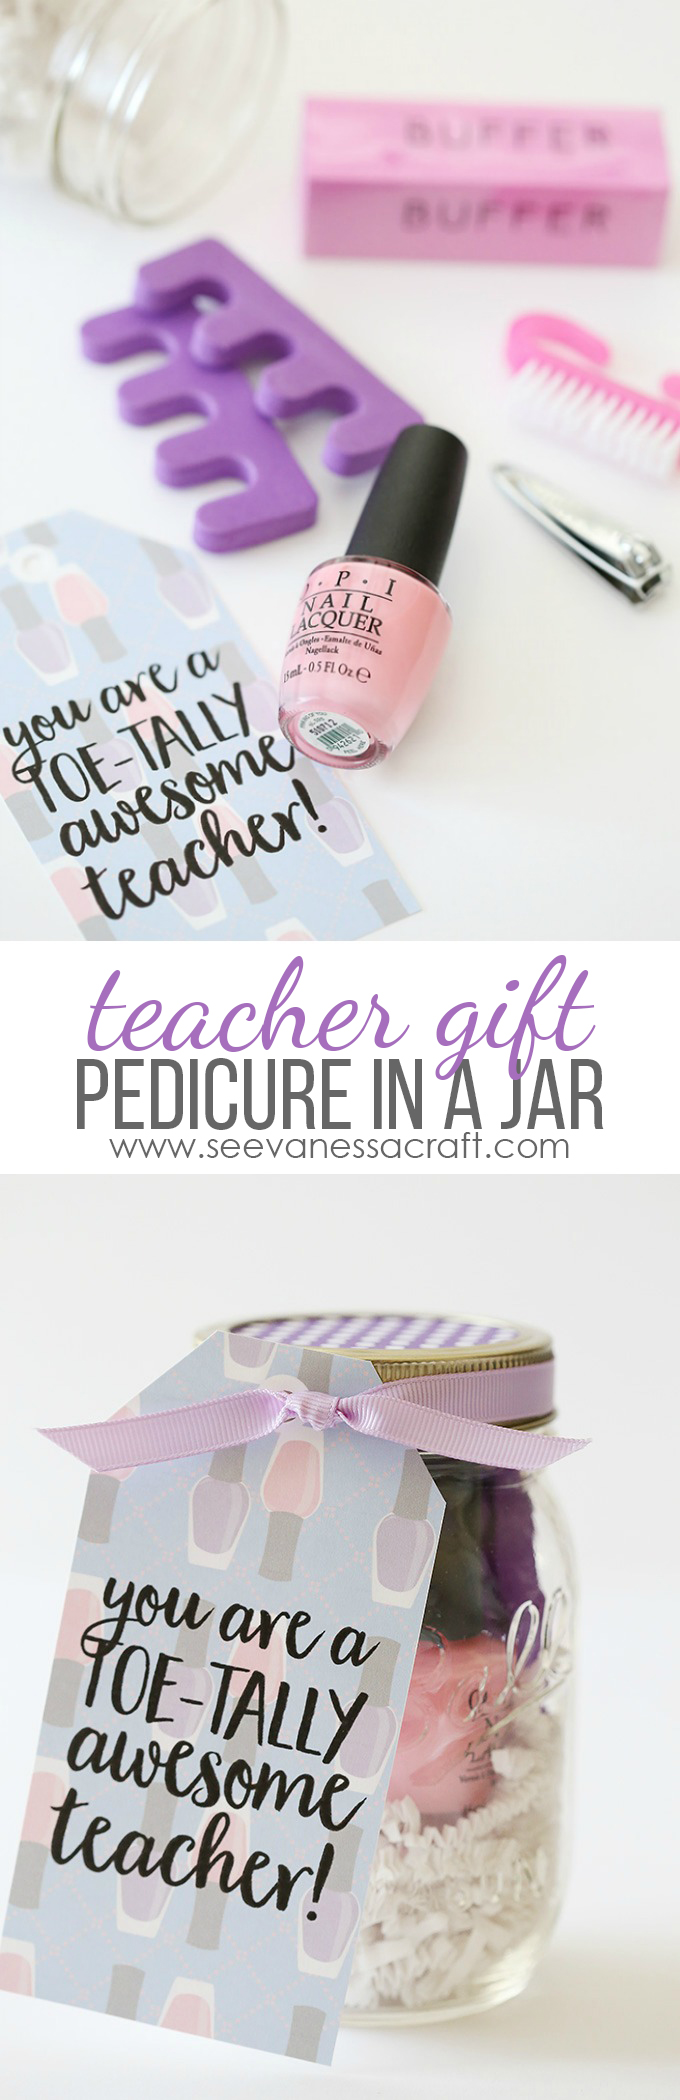 Pedicure in a Jar Gift - Teacher or Friend Gift Idea